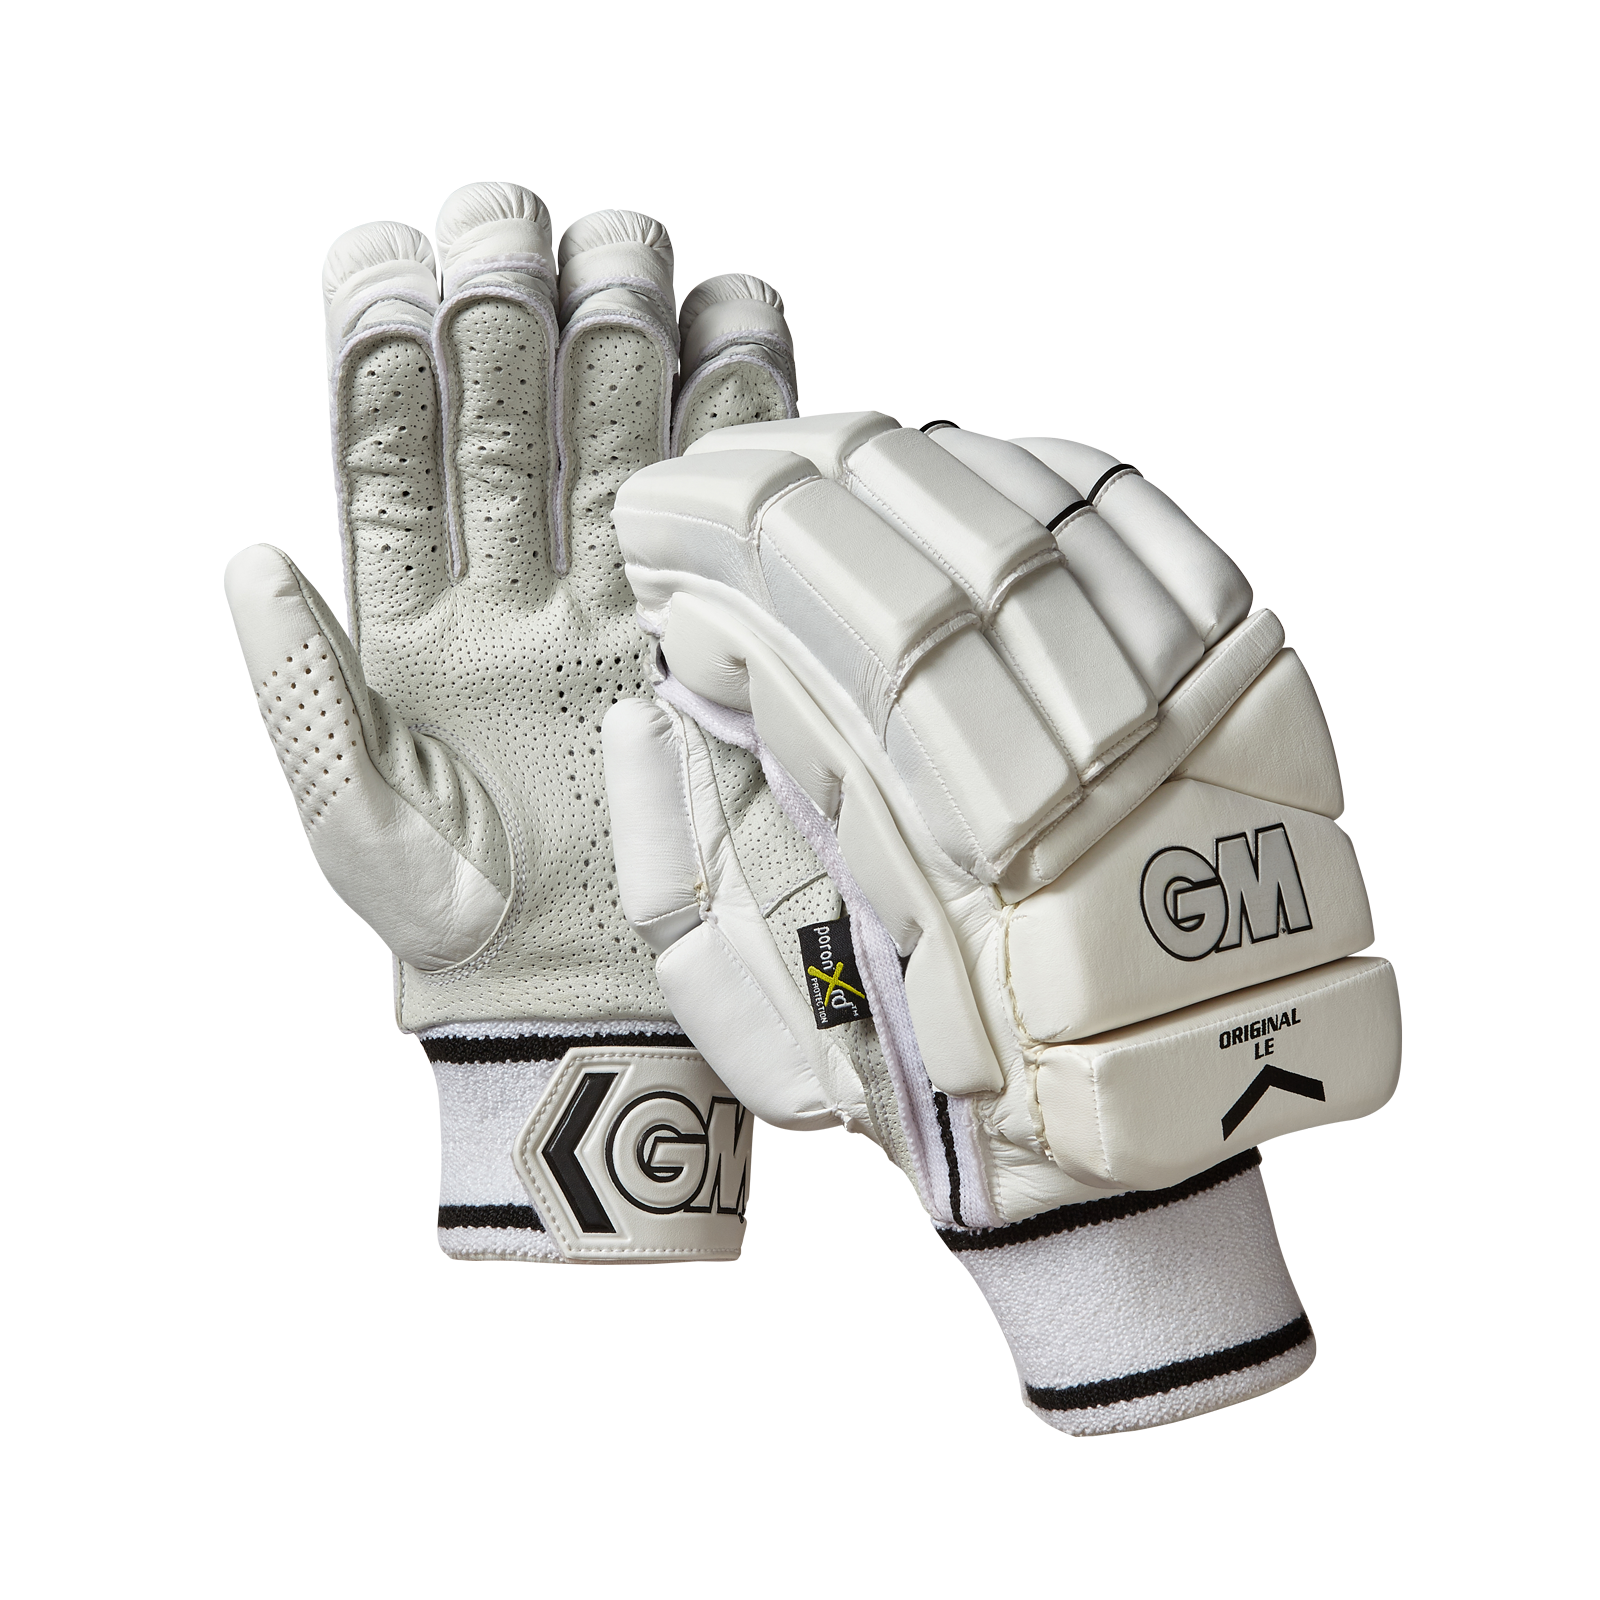 2021 Gunn and Moore Original Limited Edition Batting Gloves